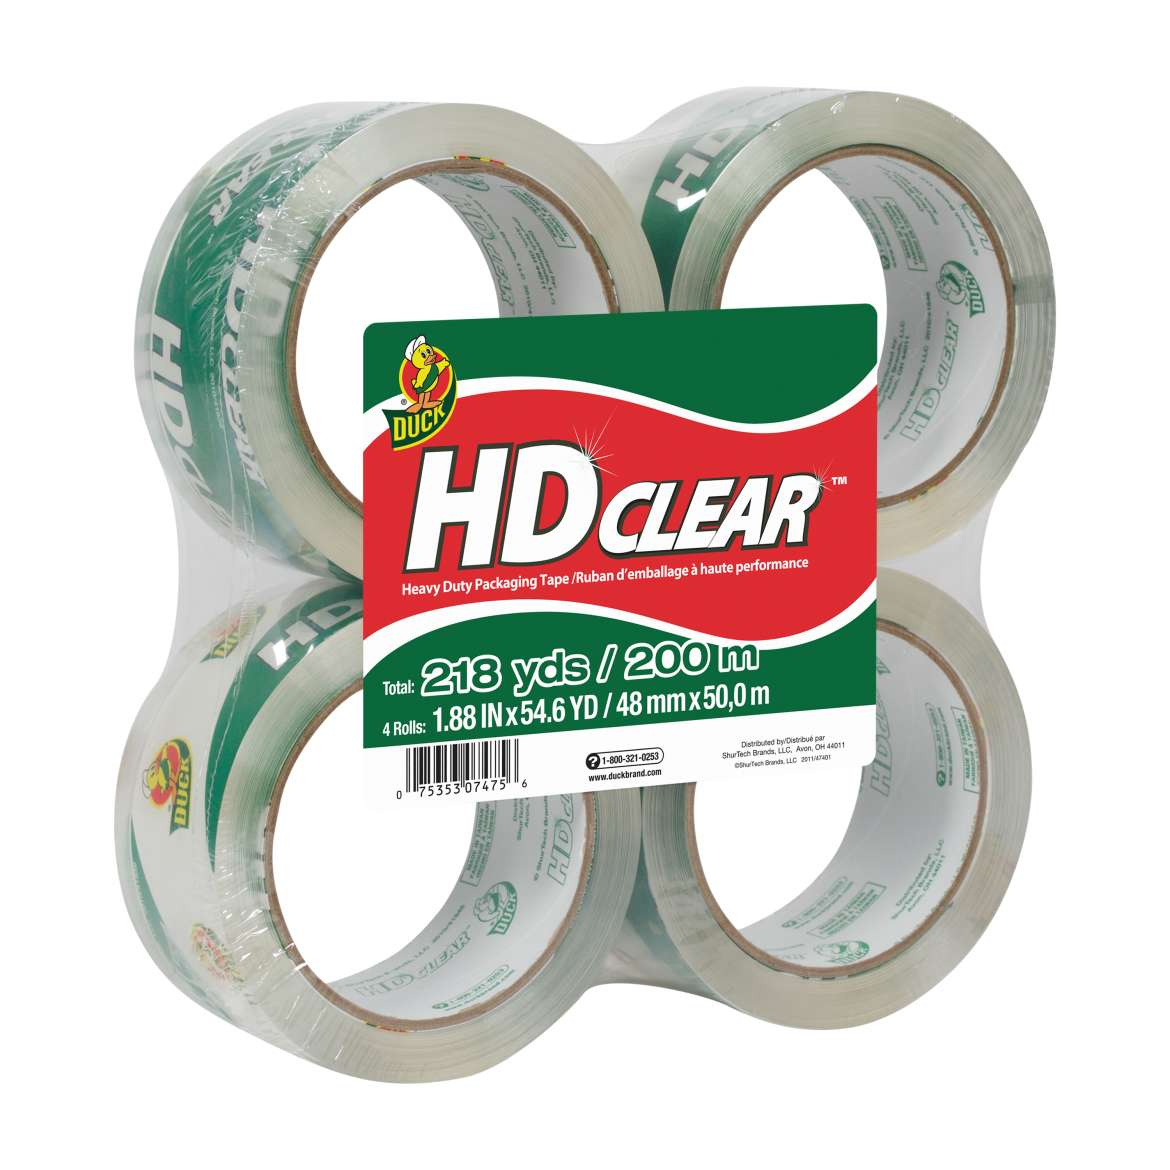 "Duck Brand Clear Packaging Tape, 1.88"" x 54.6 yds, 4-Pack"